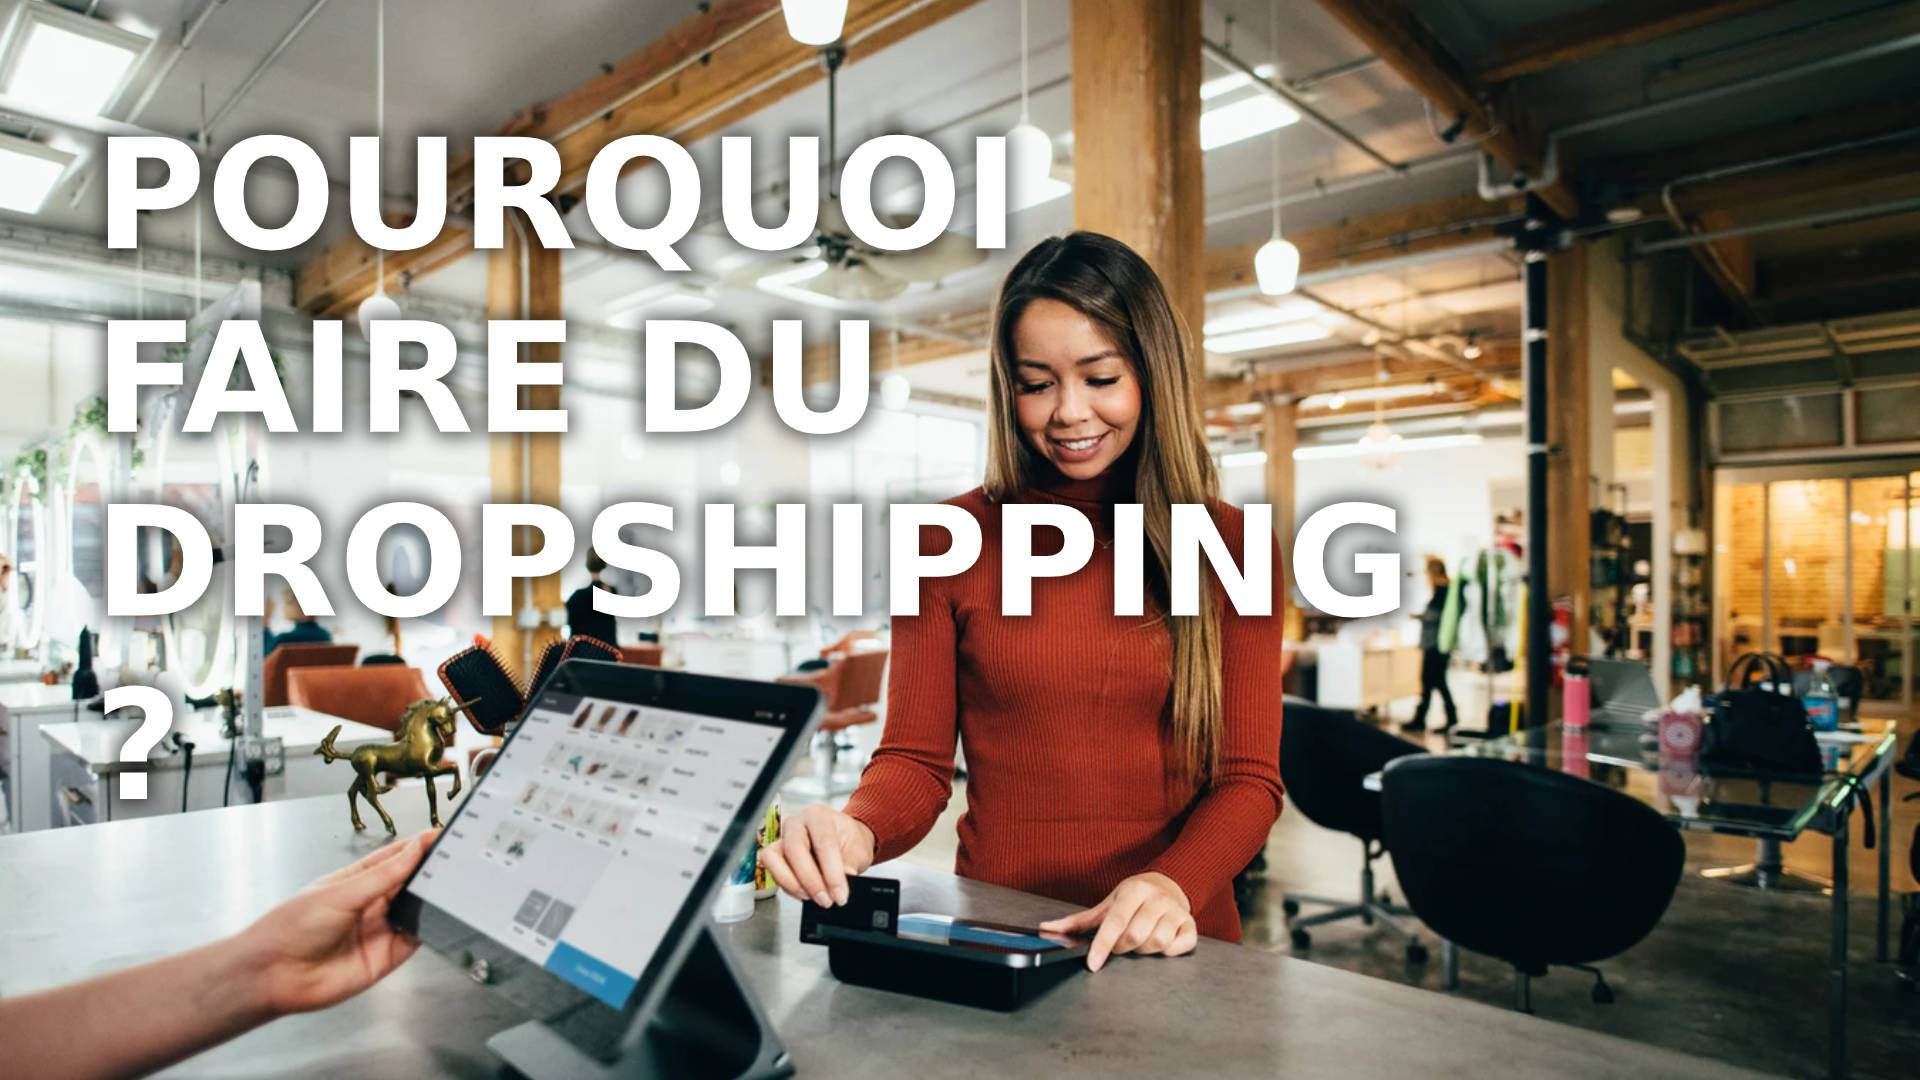 Pourquoi faire du dropshipping ?